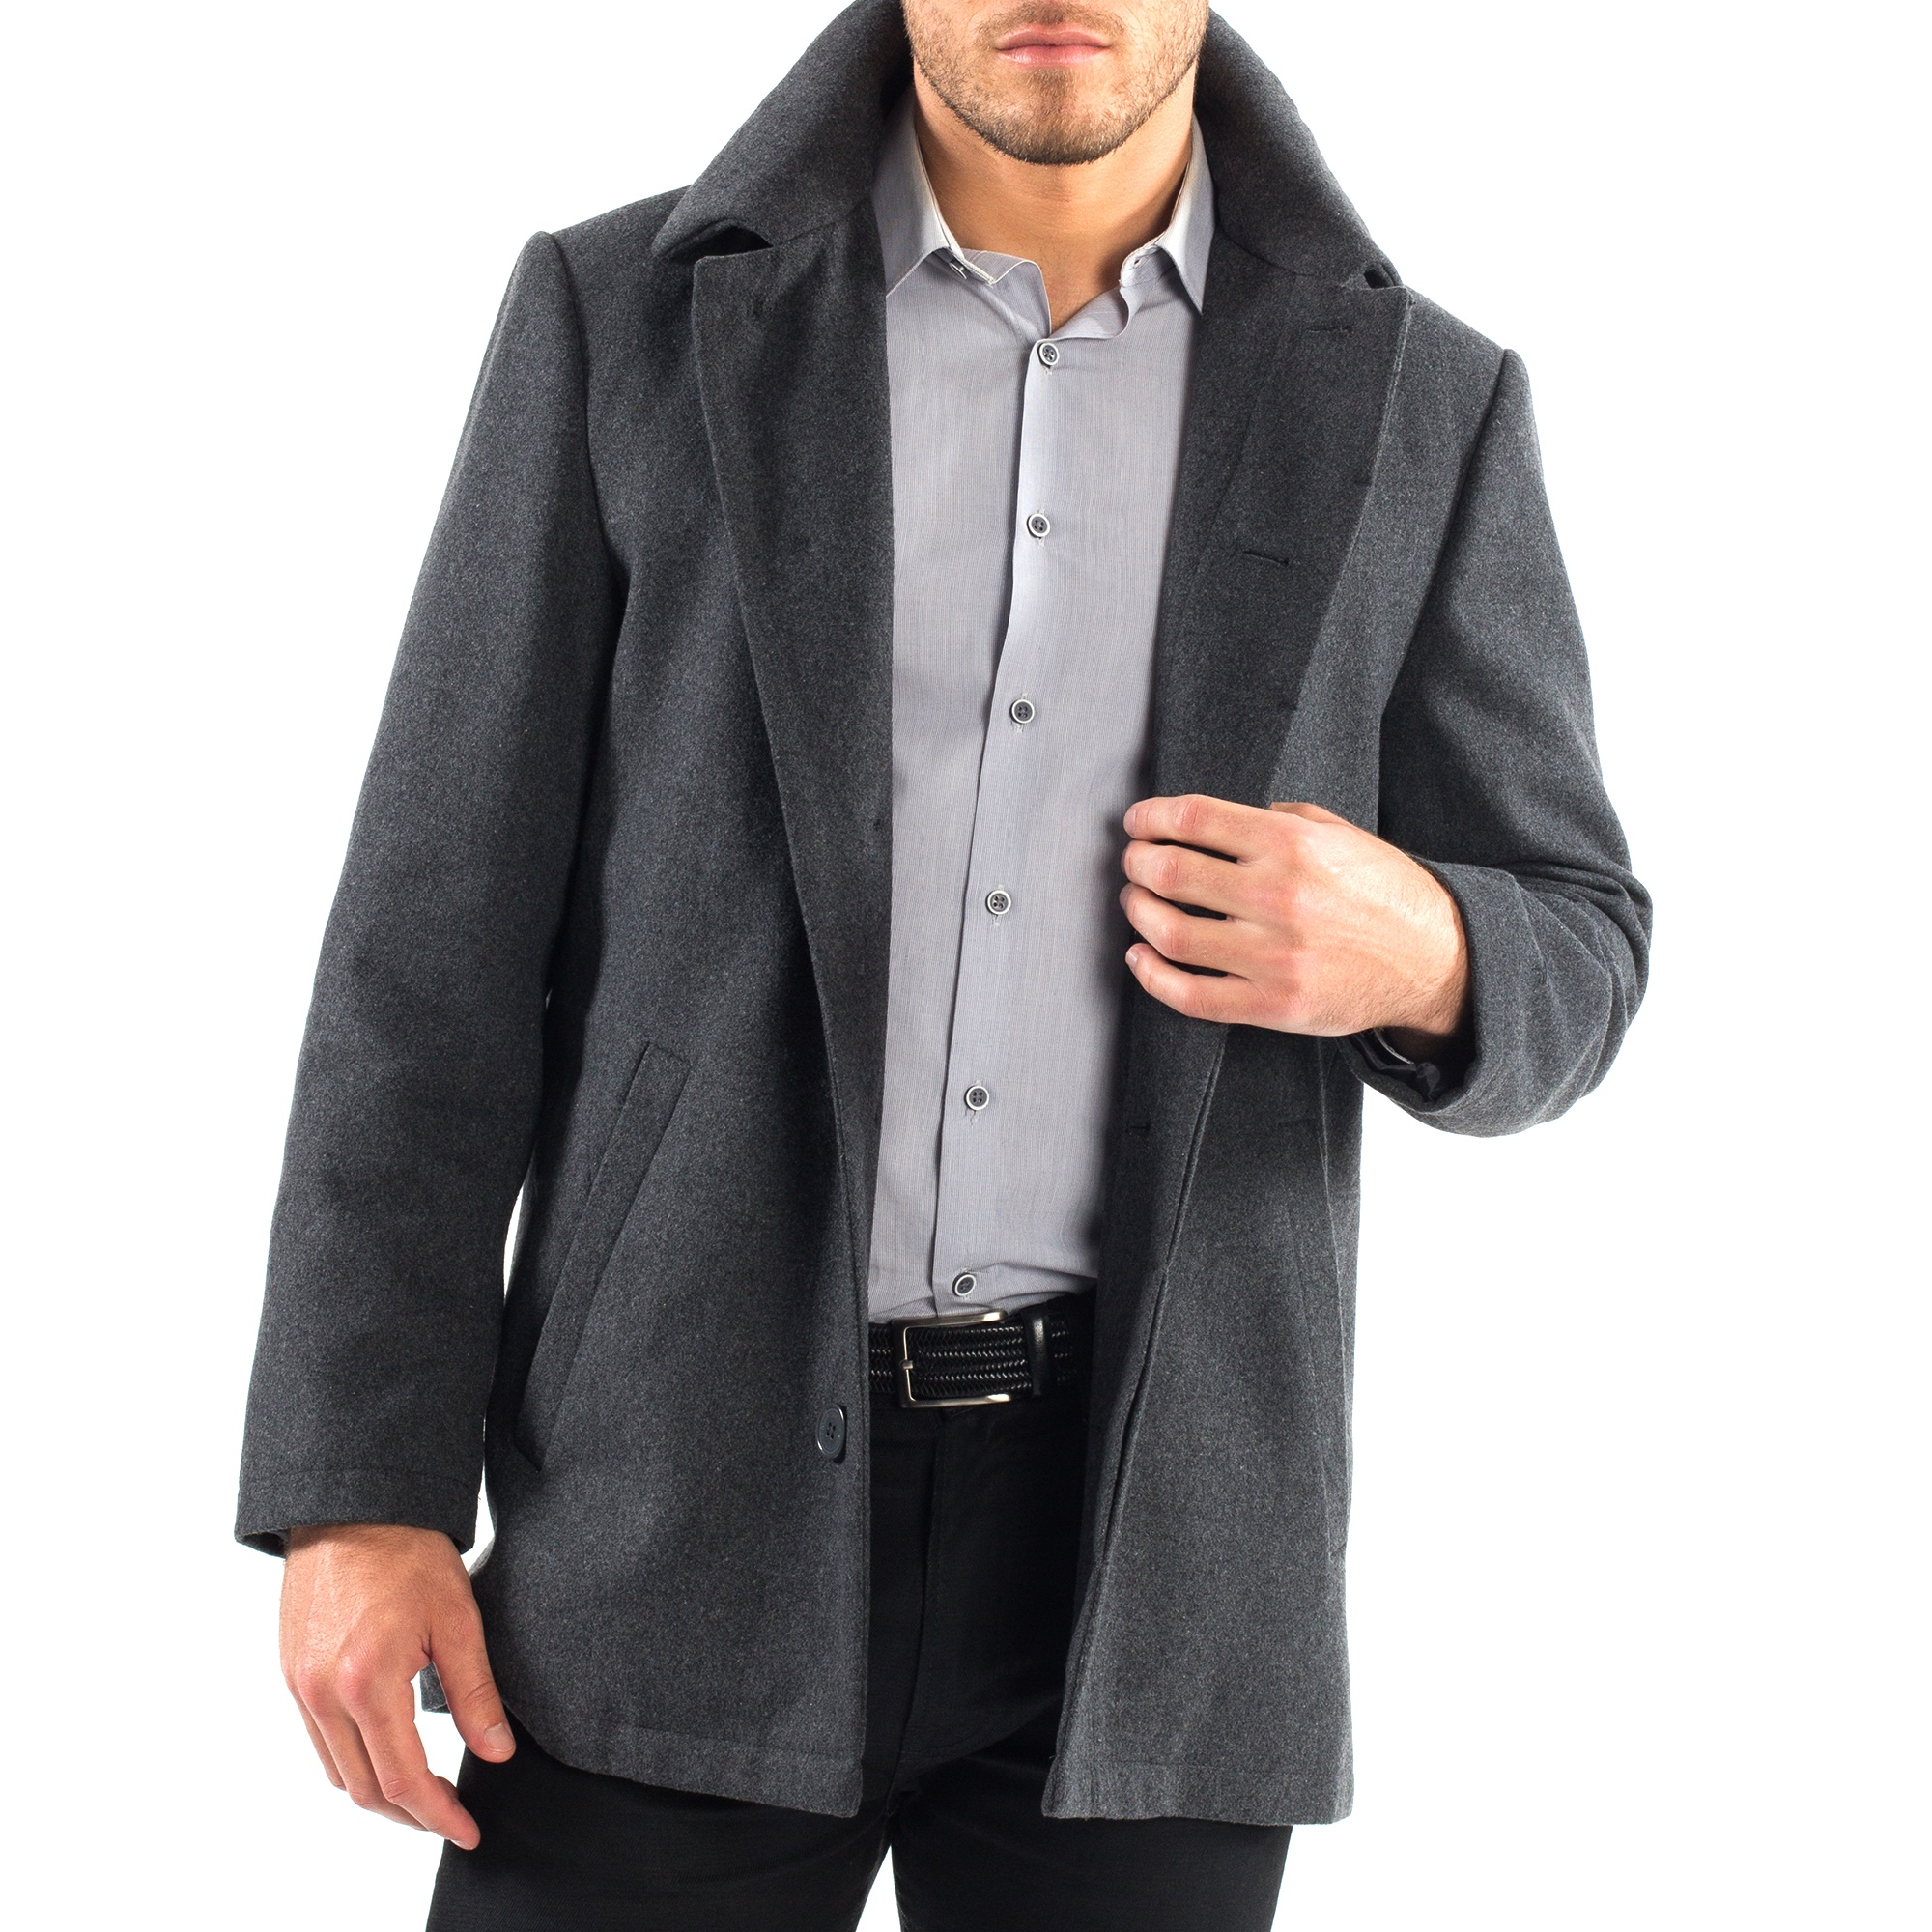 Alpine-Swiss-Vance-Mens-Jacket-Wool-Blend-Button-Up-Coat-Dress-Car-Coat-Blazer thumbnail 24